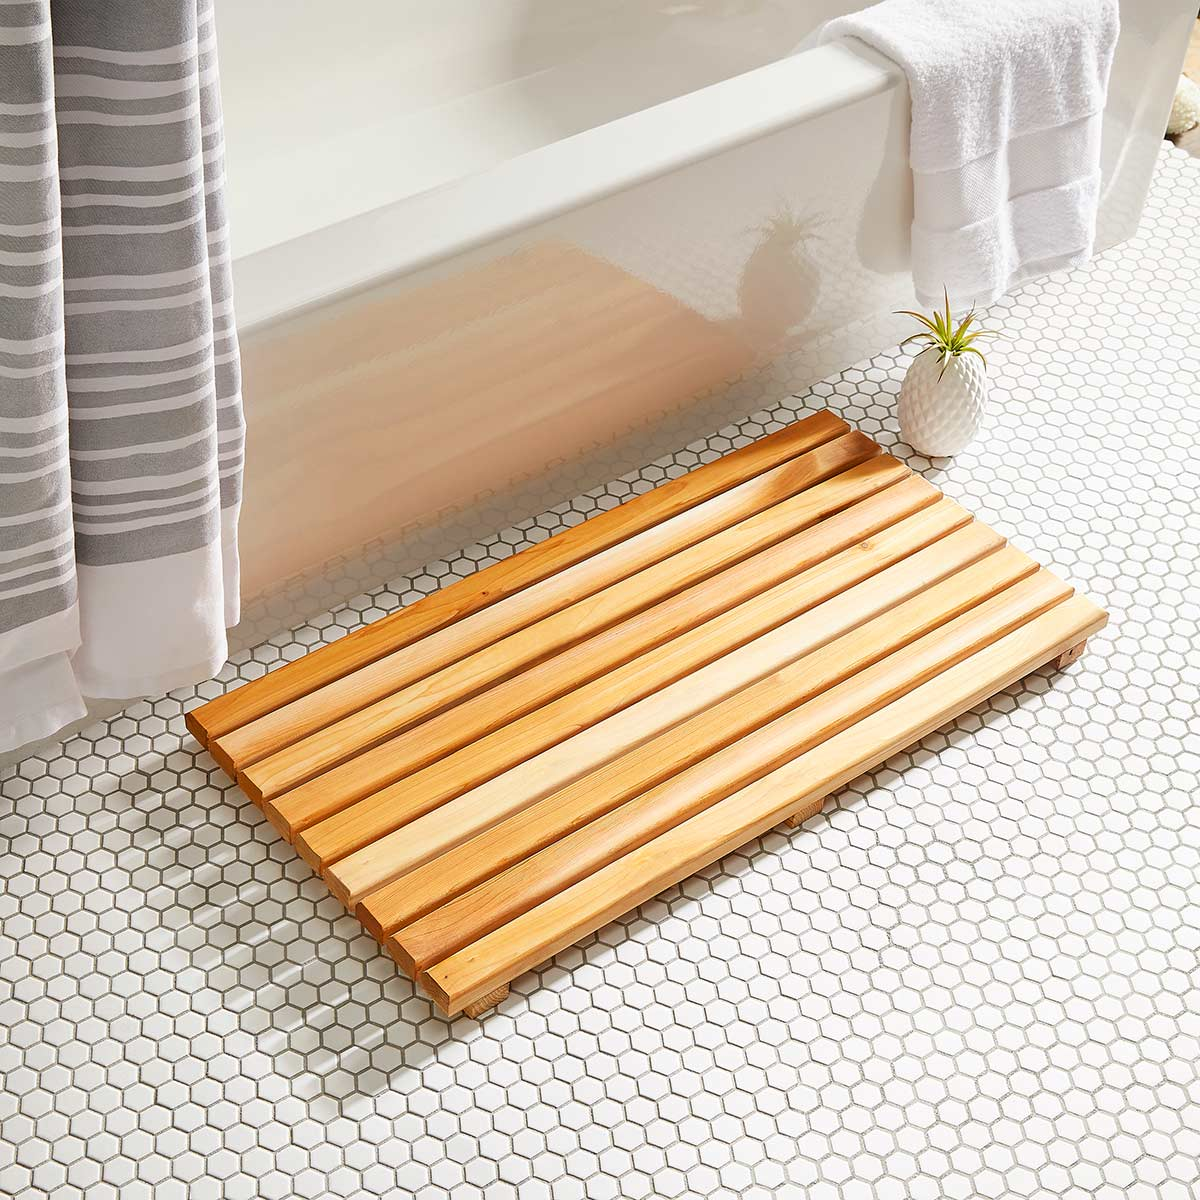 wooden bathmat made from plyco's bamboo plywood